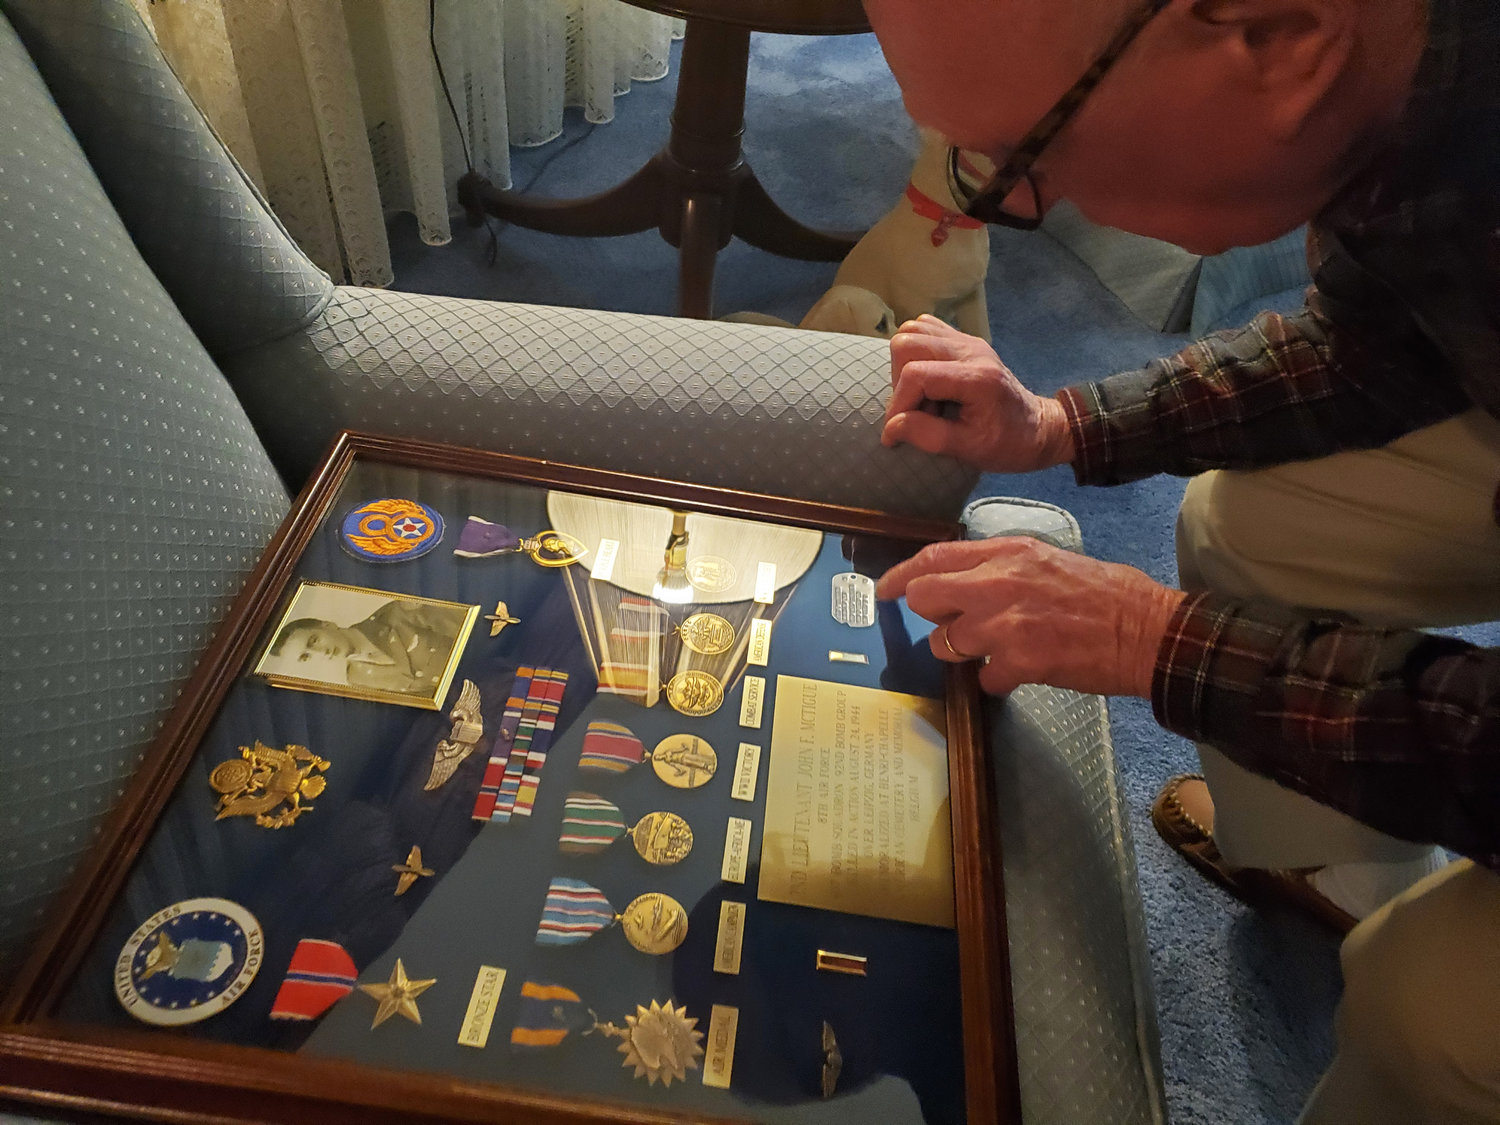 Tom McTigue looked over some of his brother John's Army memorabilia.